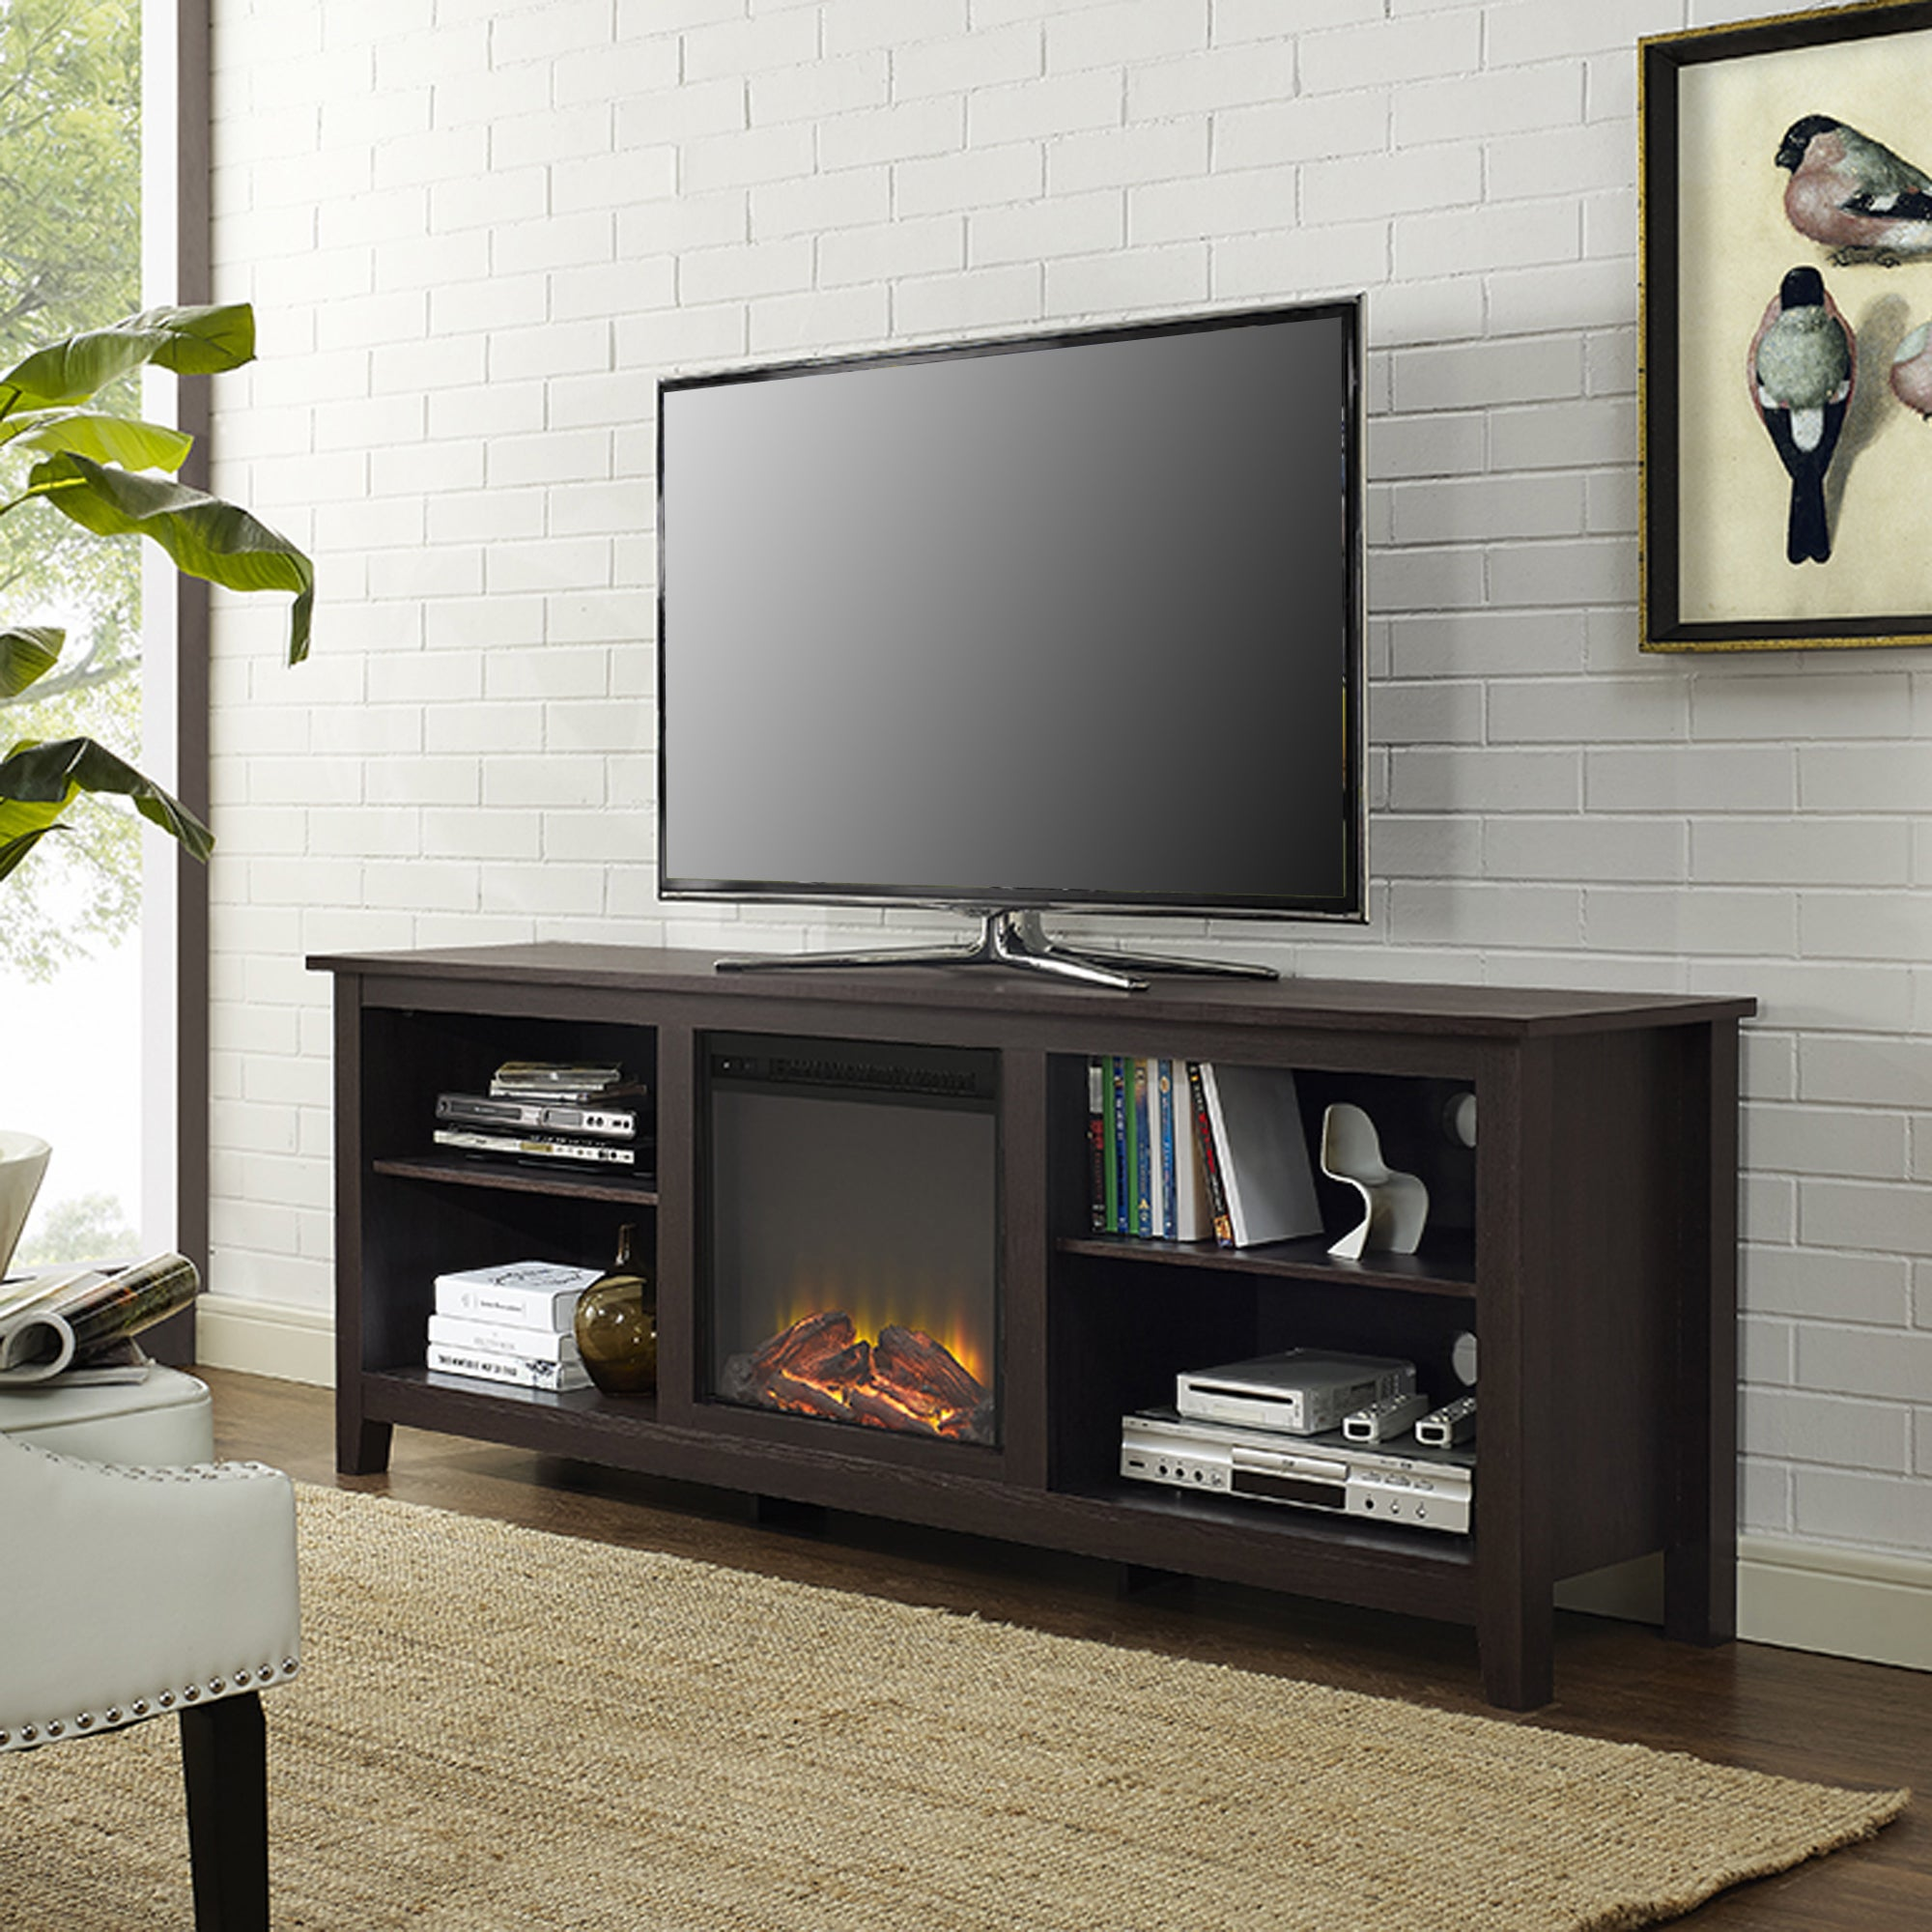 tv stand discount reviews with concept cabinet kibinokuni electric price and fireplace youtube info modern combo buy